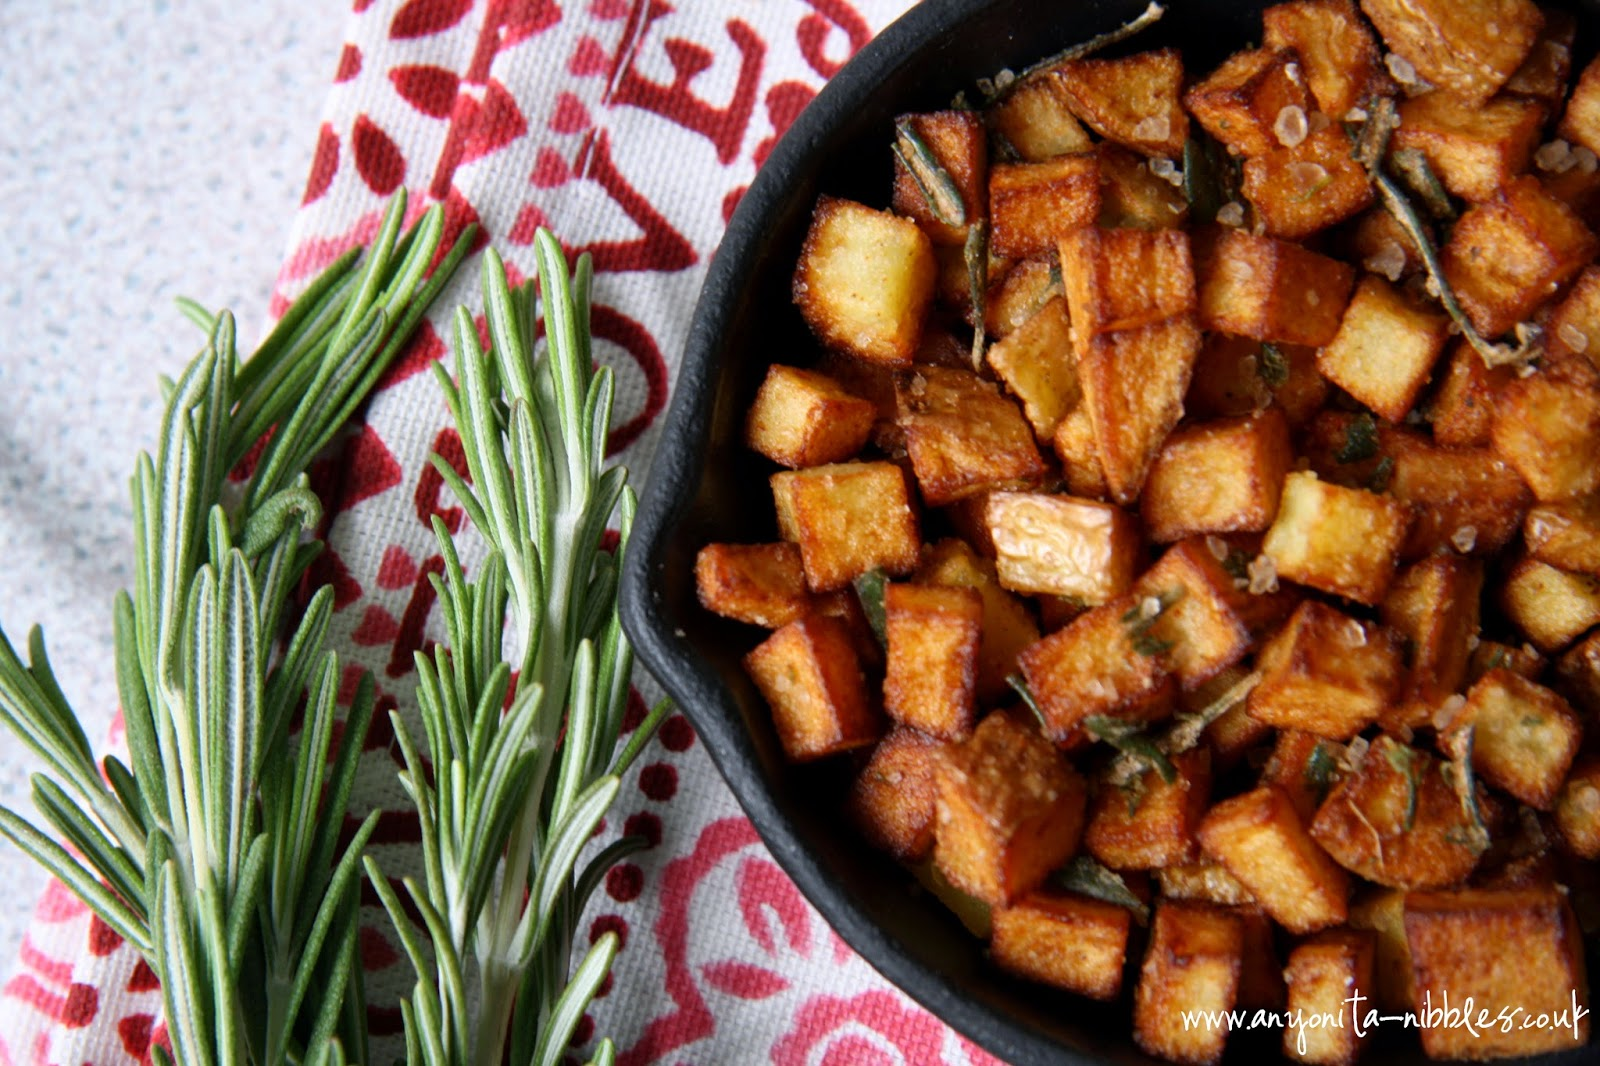 A skillet of rosemary & salt potatoes from www.anyonita-nibbles.co.uk #glutenfree #vegan #vegetarian